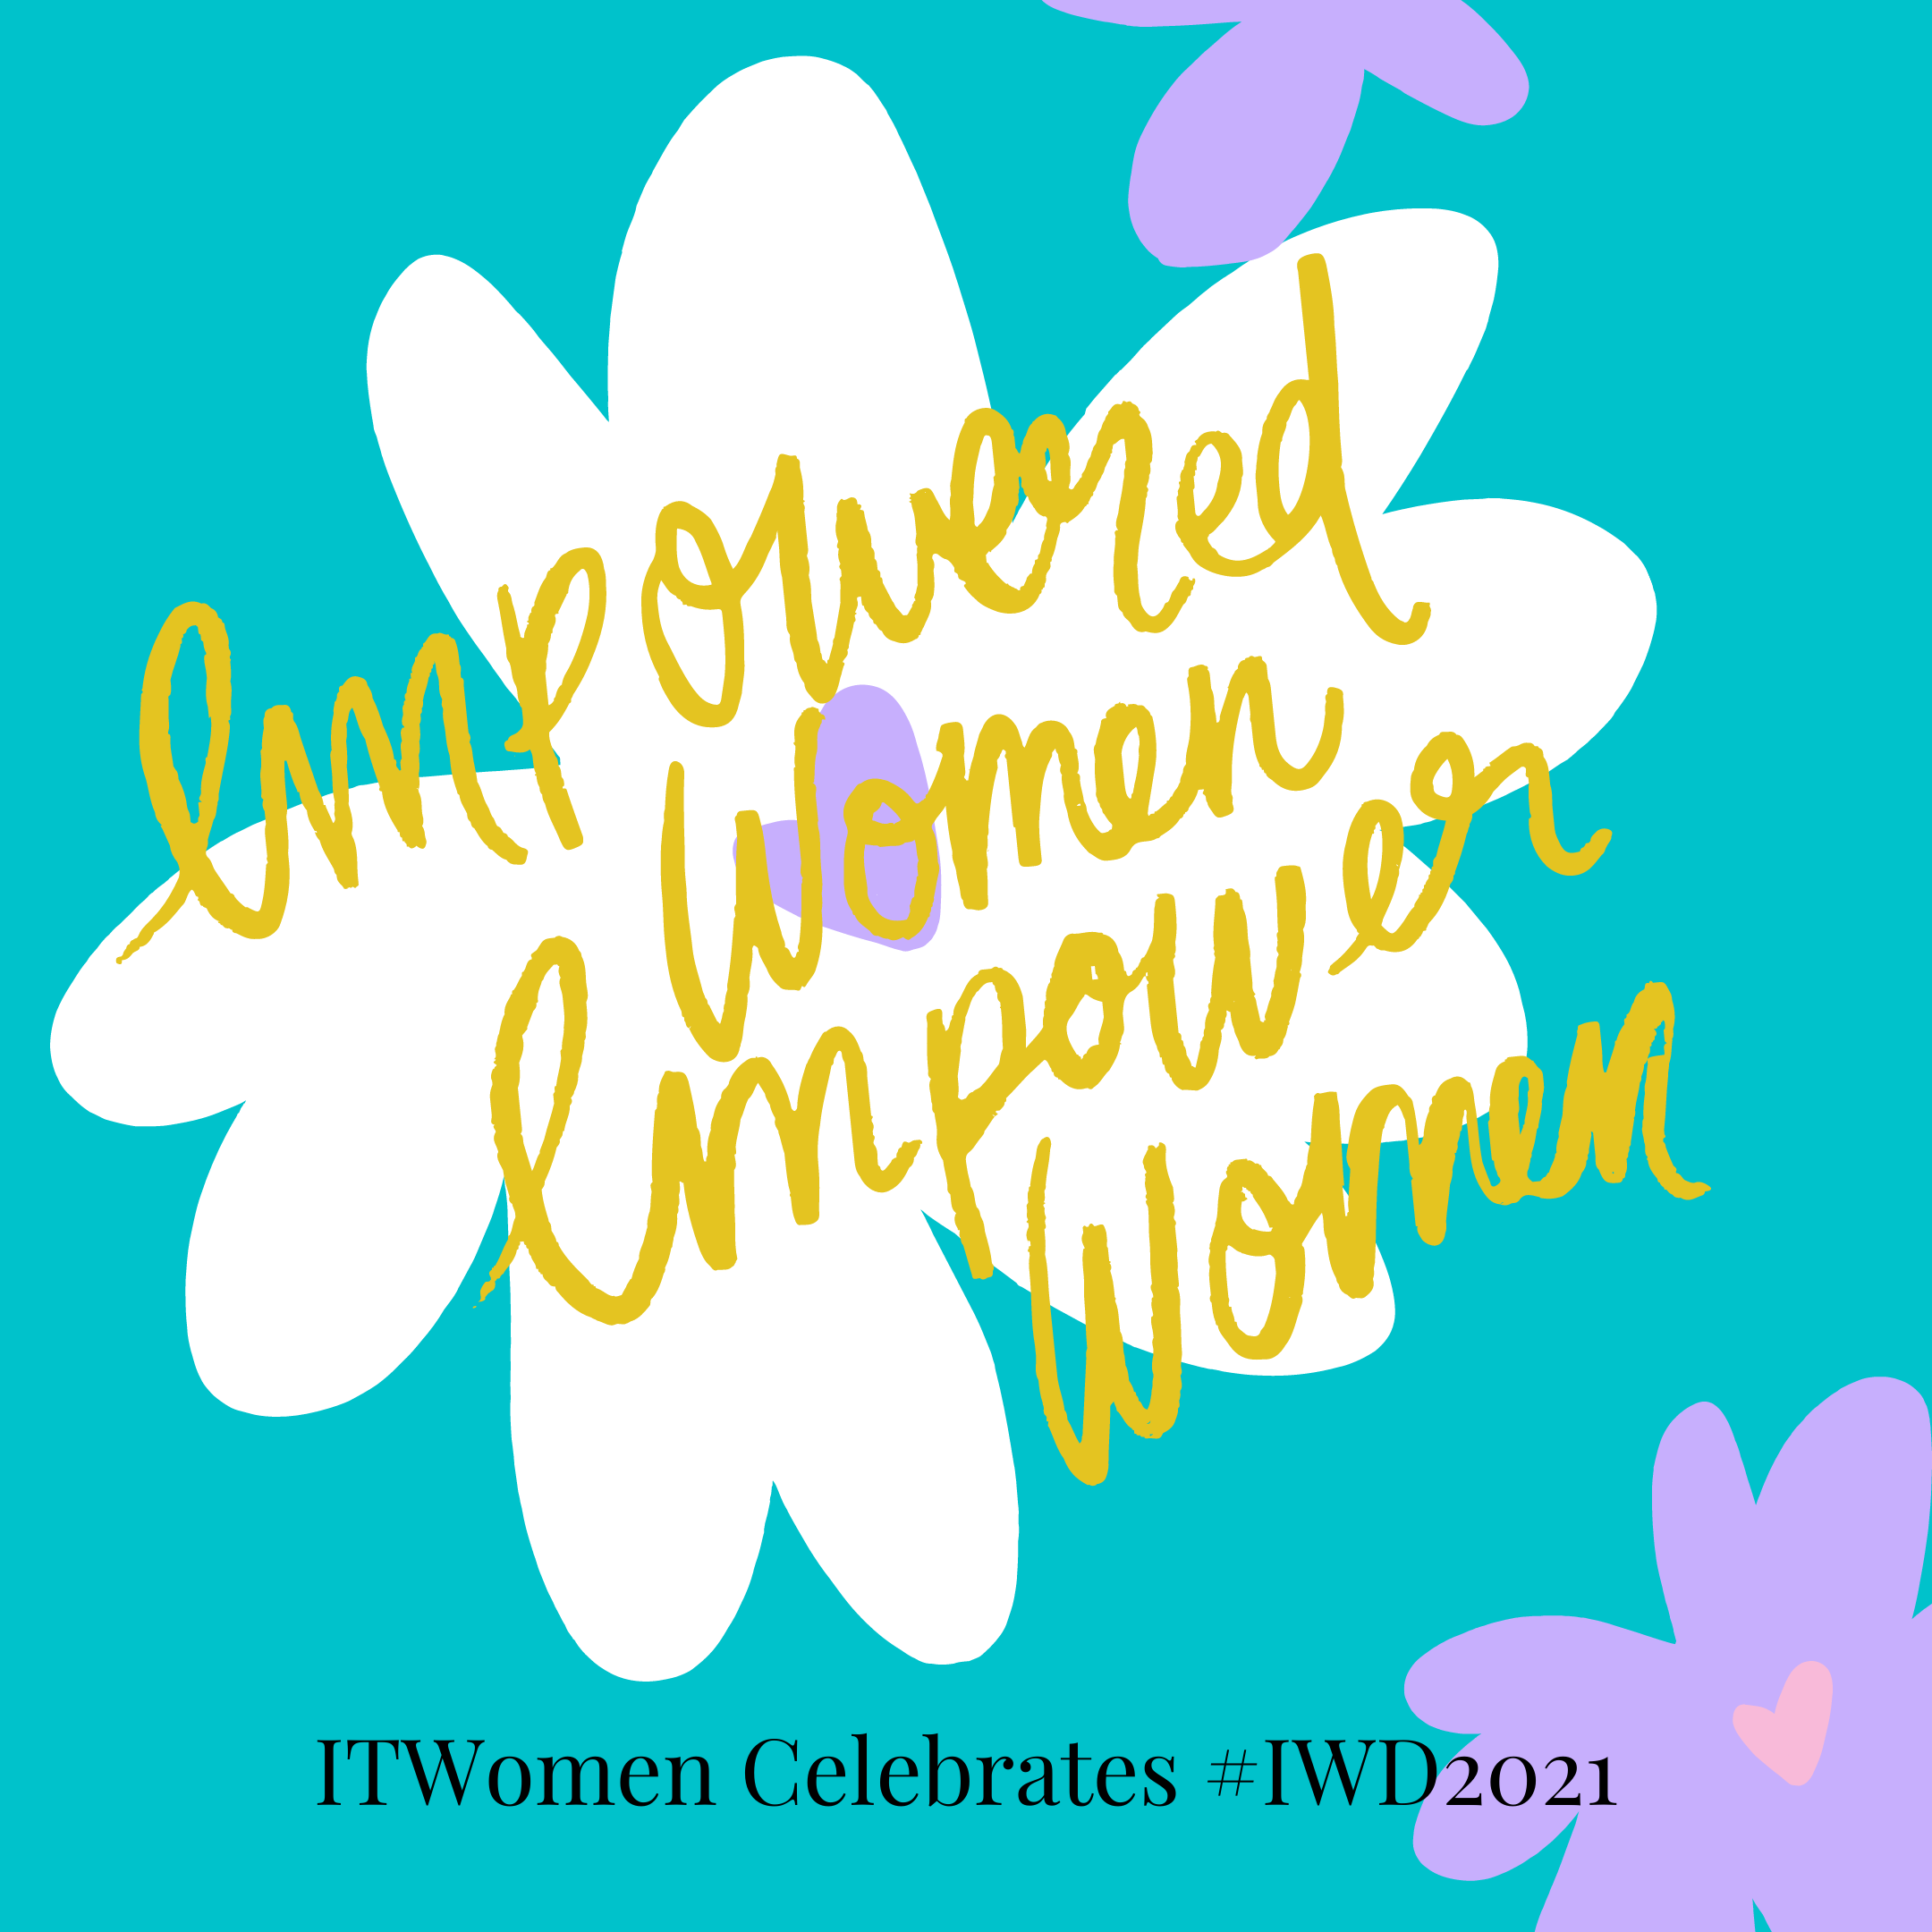 ITWomen celebrating International Women's Day 2021